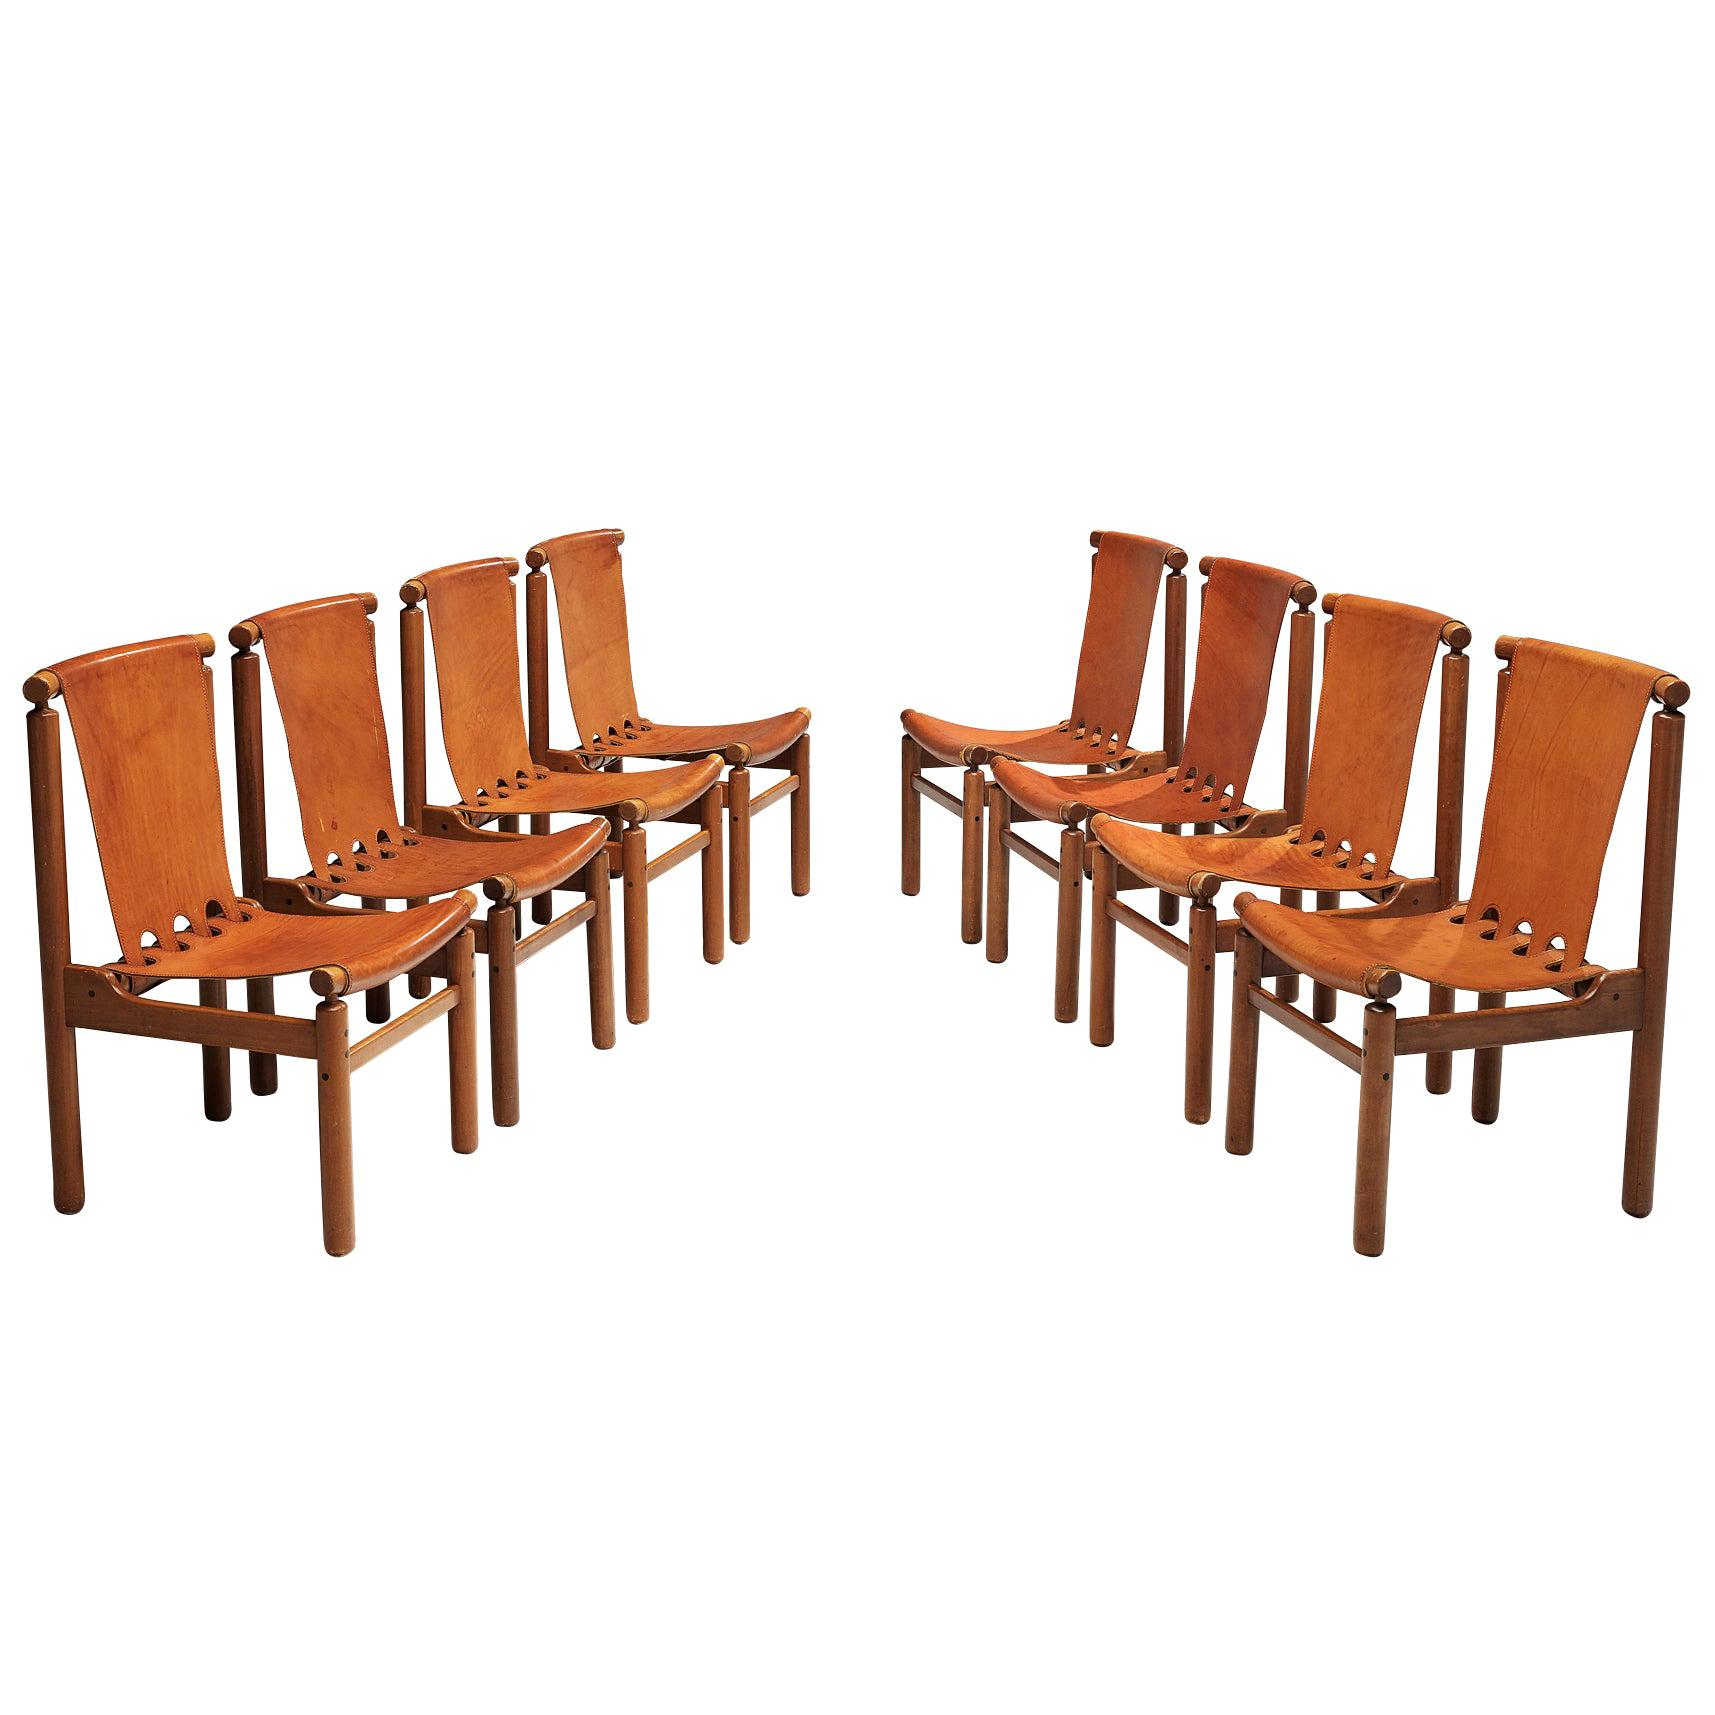 Ilmari Tapiovaara Set of Eight Dining Chairs in Cognac Leather